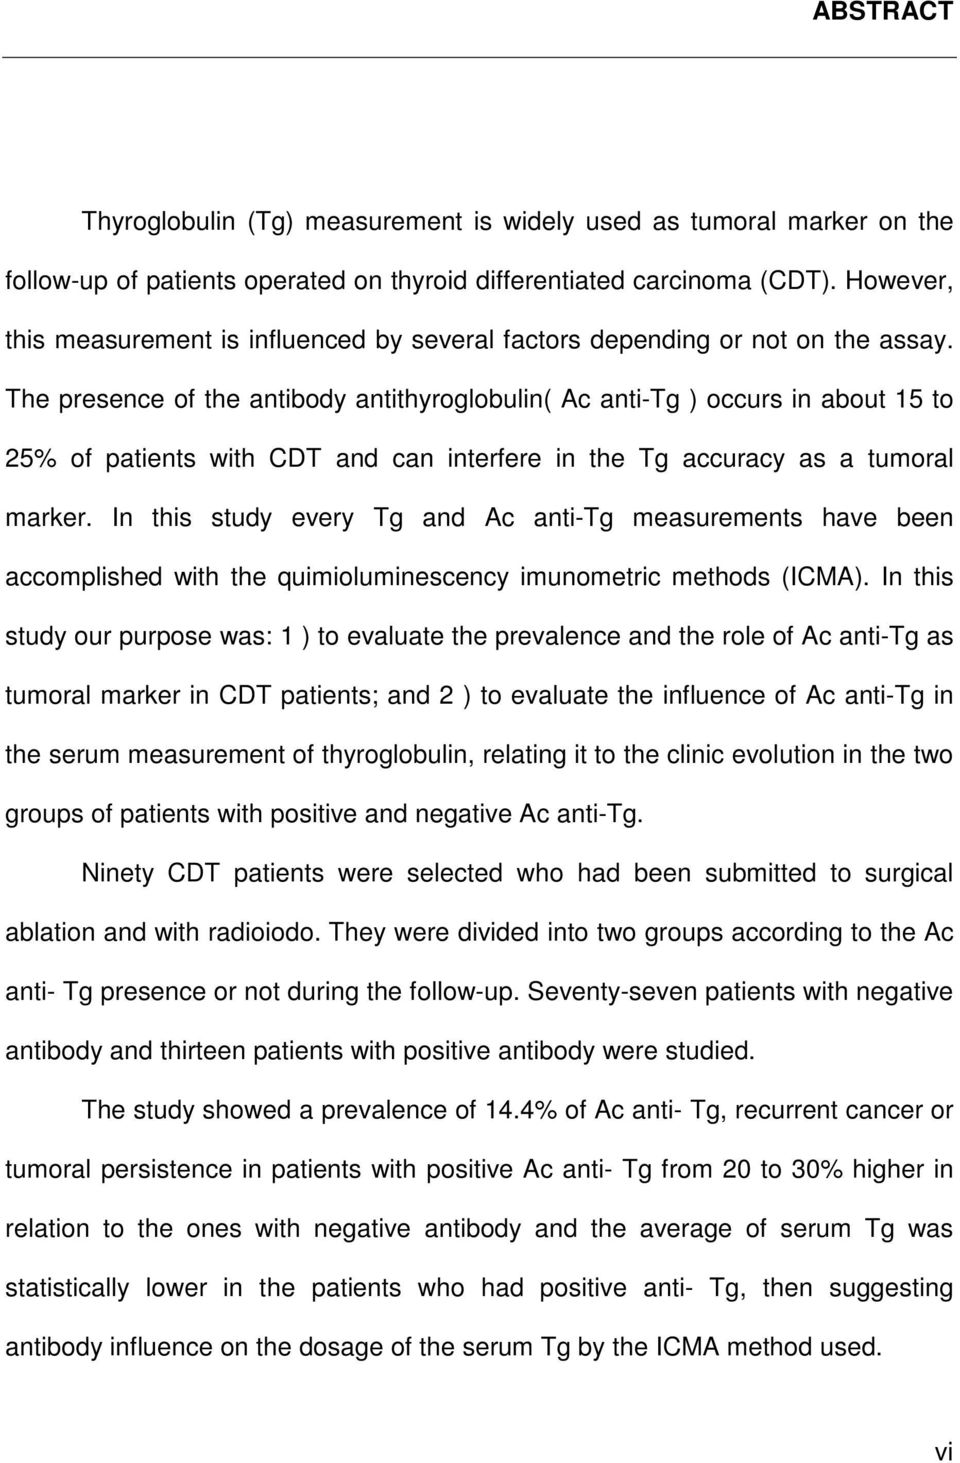 The presence of the antibody antithyroglobulin( Ac anti-tg ) occurs in about 15 to 25% of patients with CDT and can interfere in the Tg accuracy as a tumoral marker.